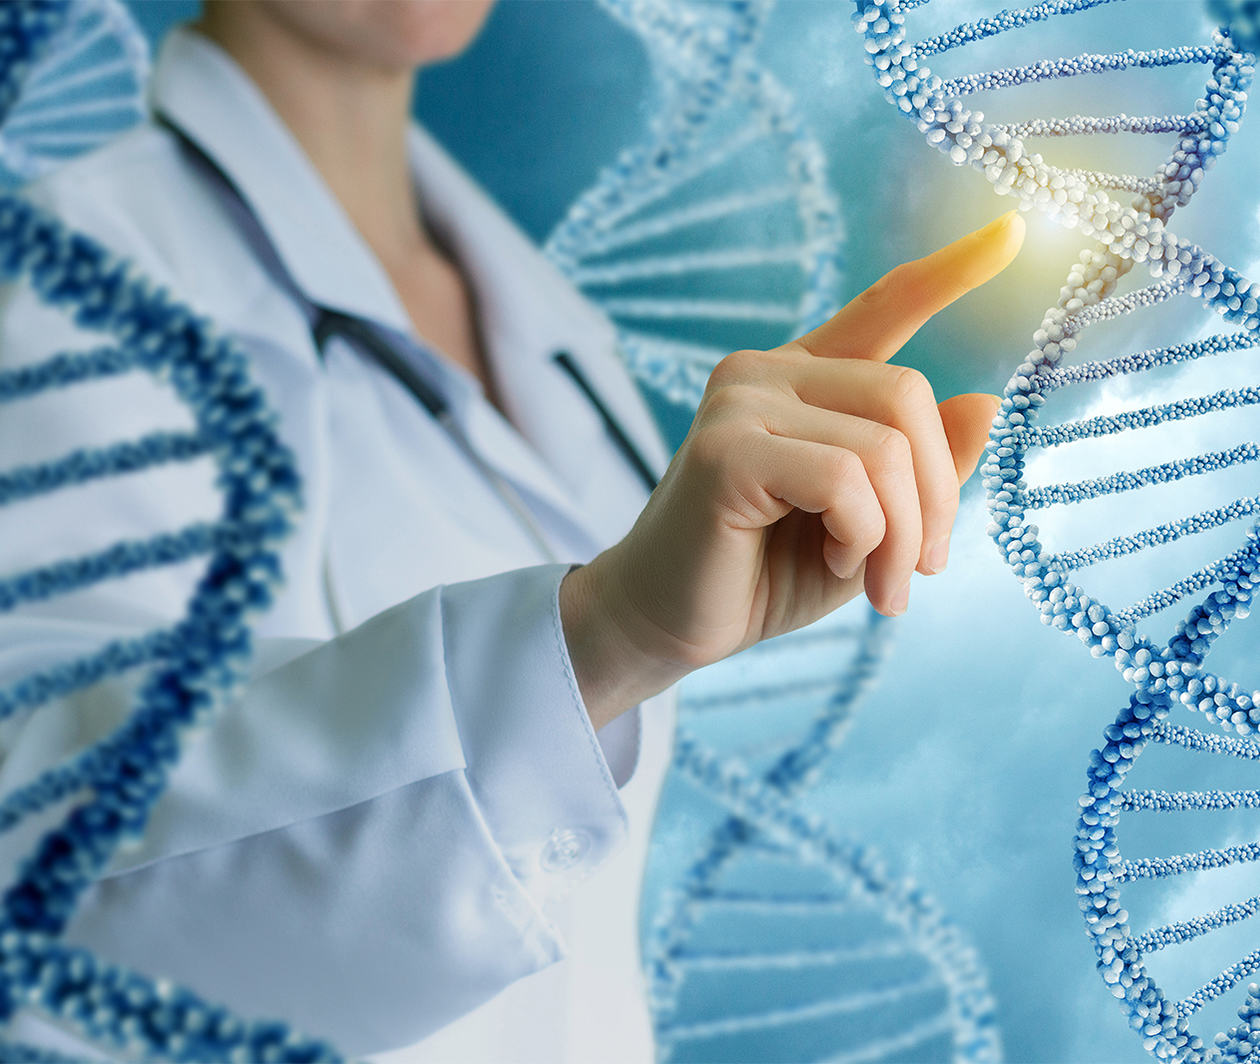 How Does the Body Use DNA as a Blueprint?